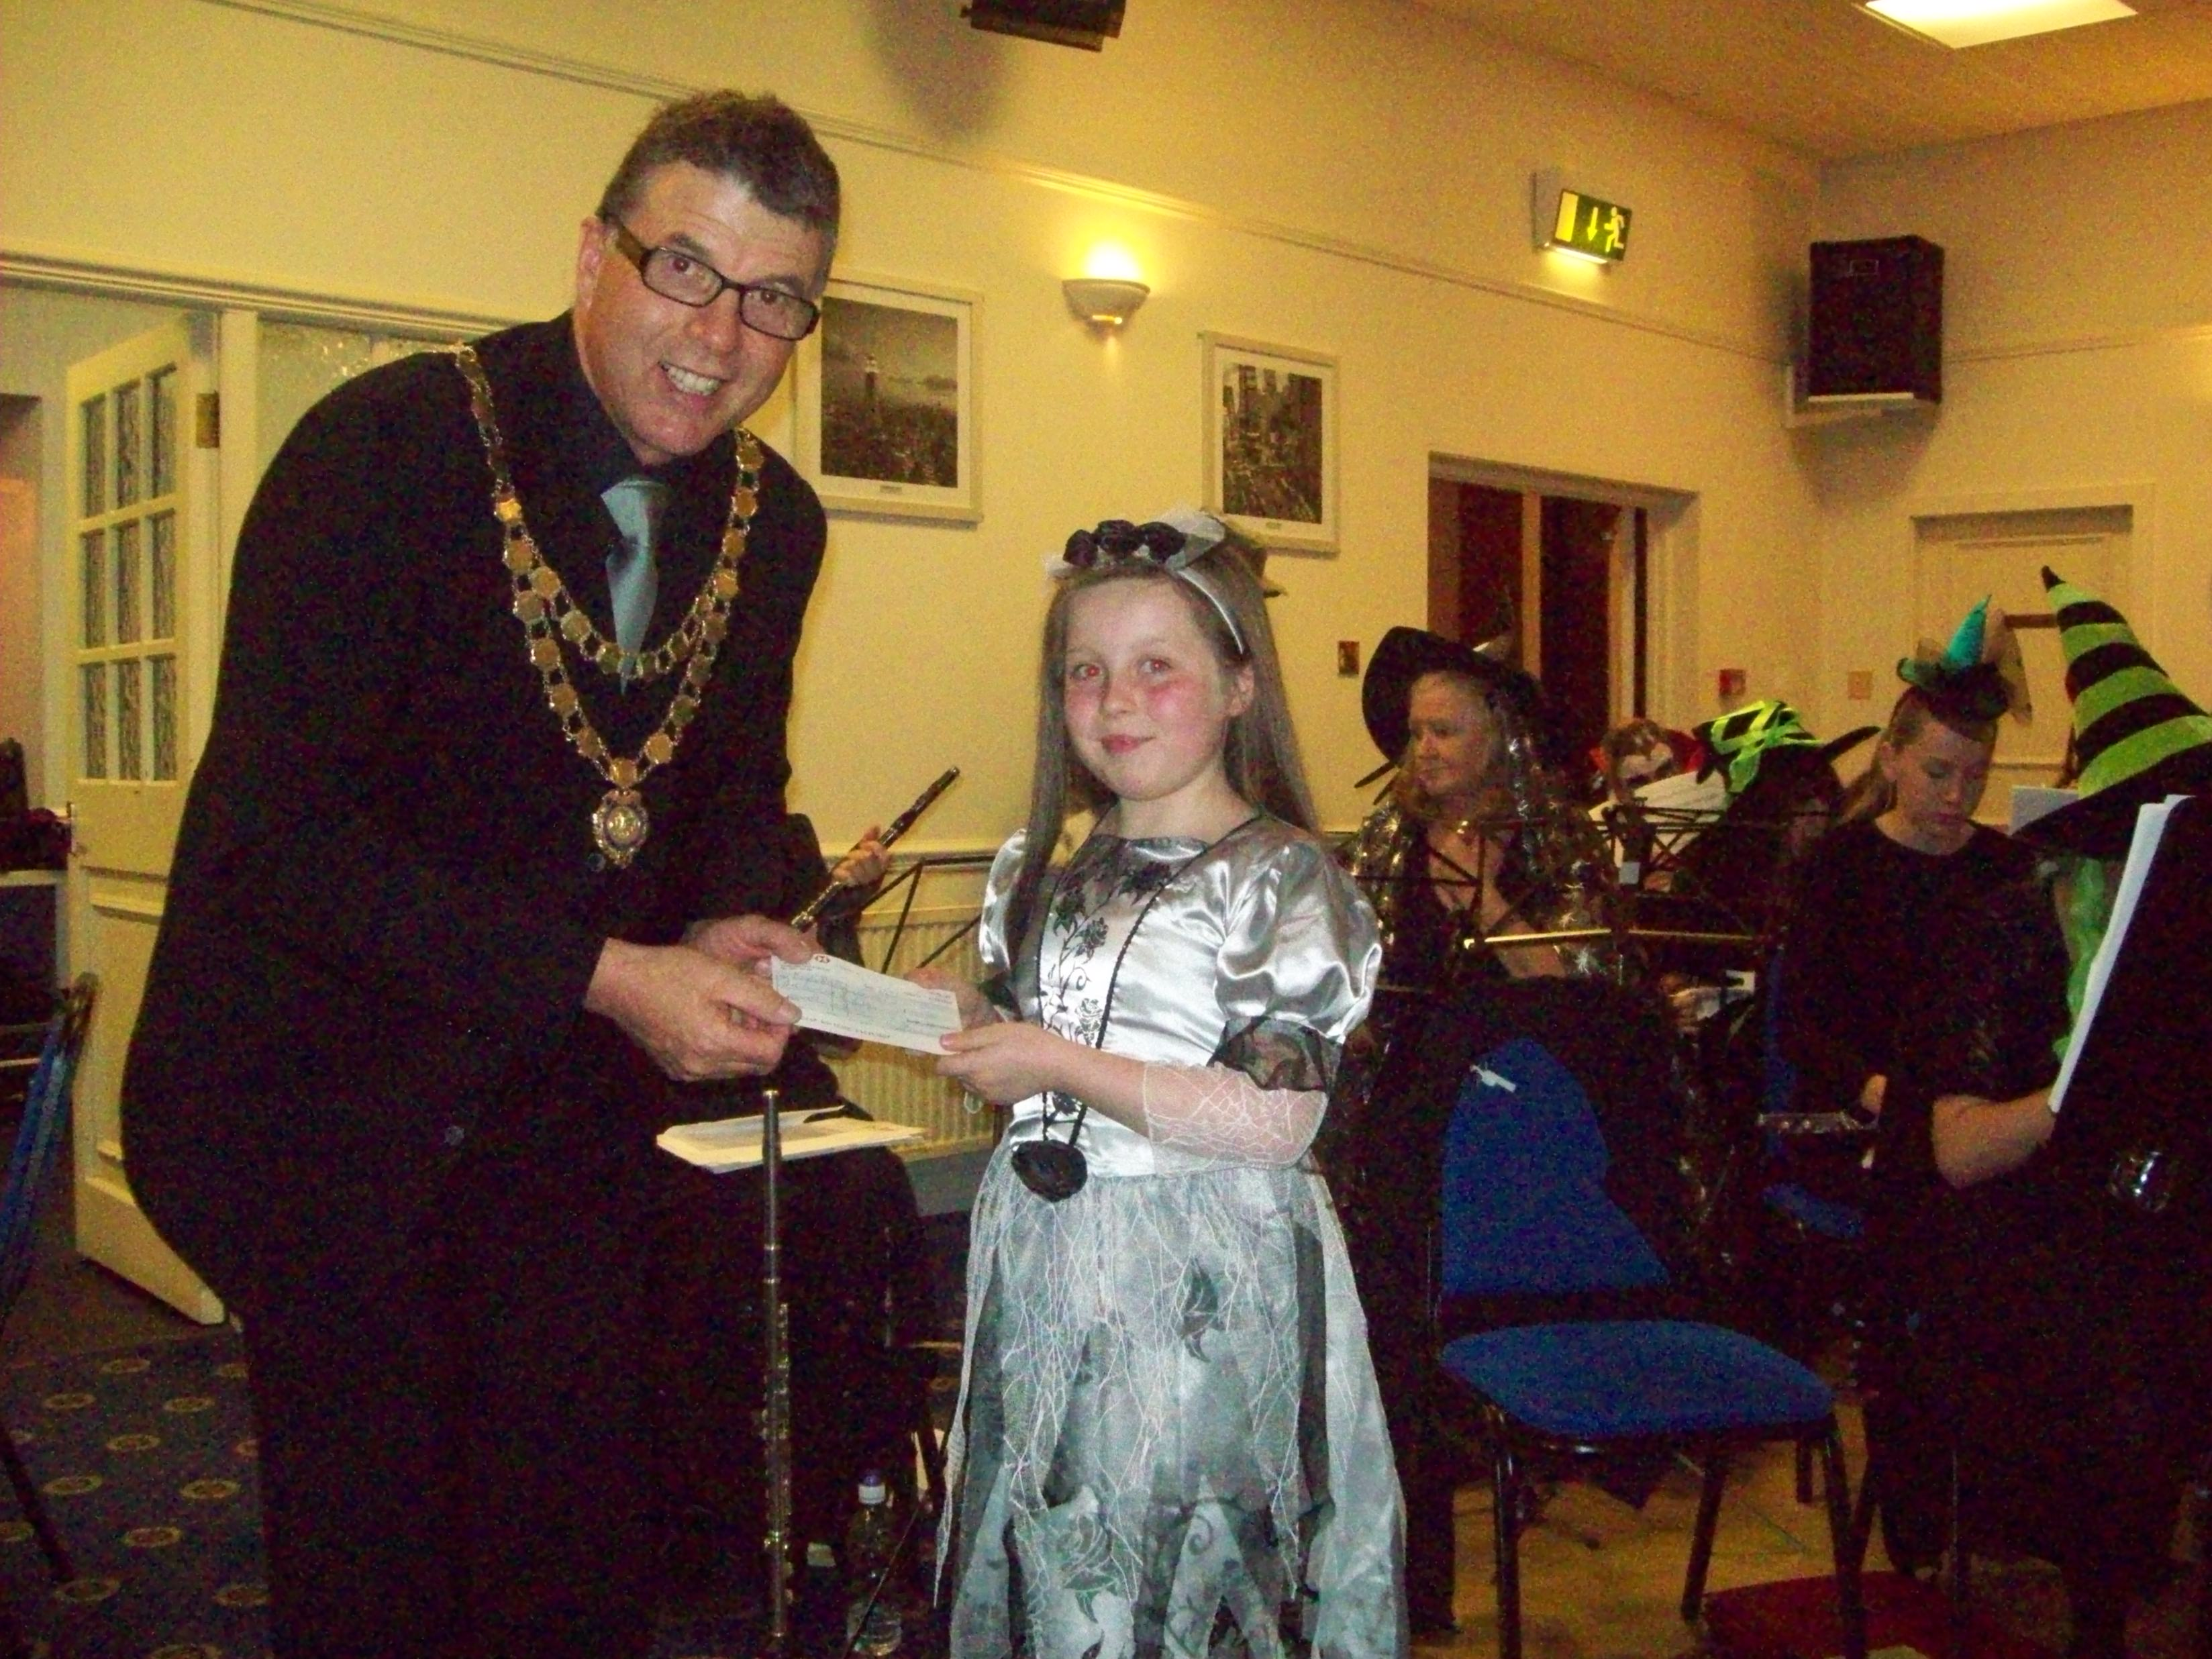 Mayor of Maghull Cllr Steve Kermode is presented with the cheque from the money raised at the Maghull Wind Orchestra Halloween Concert by Faye Kay.